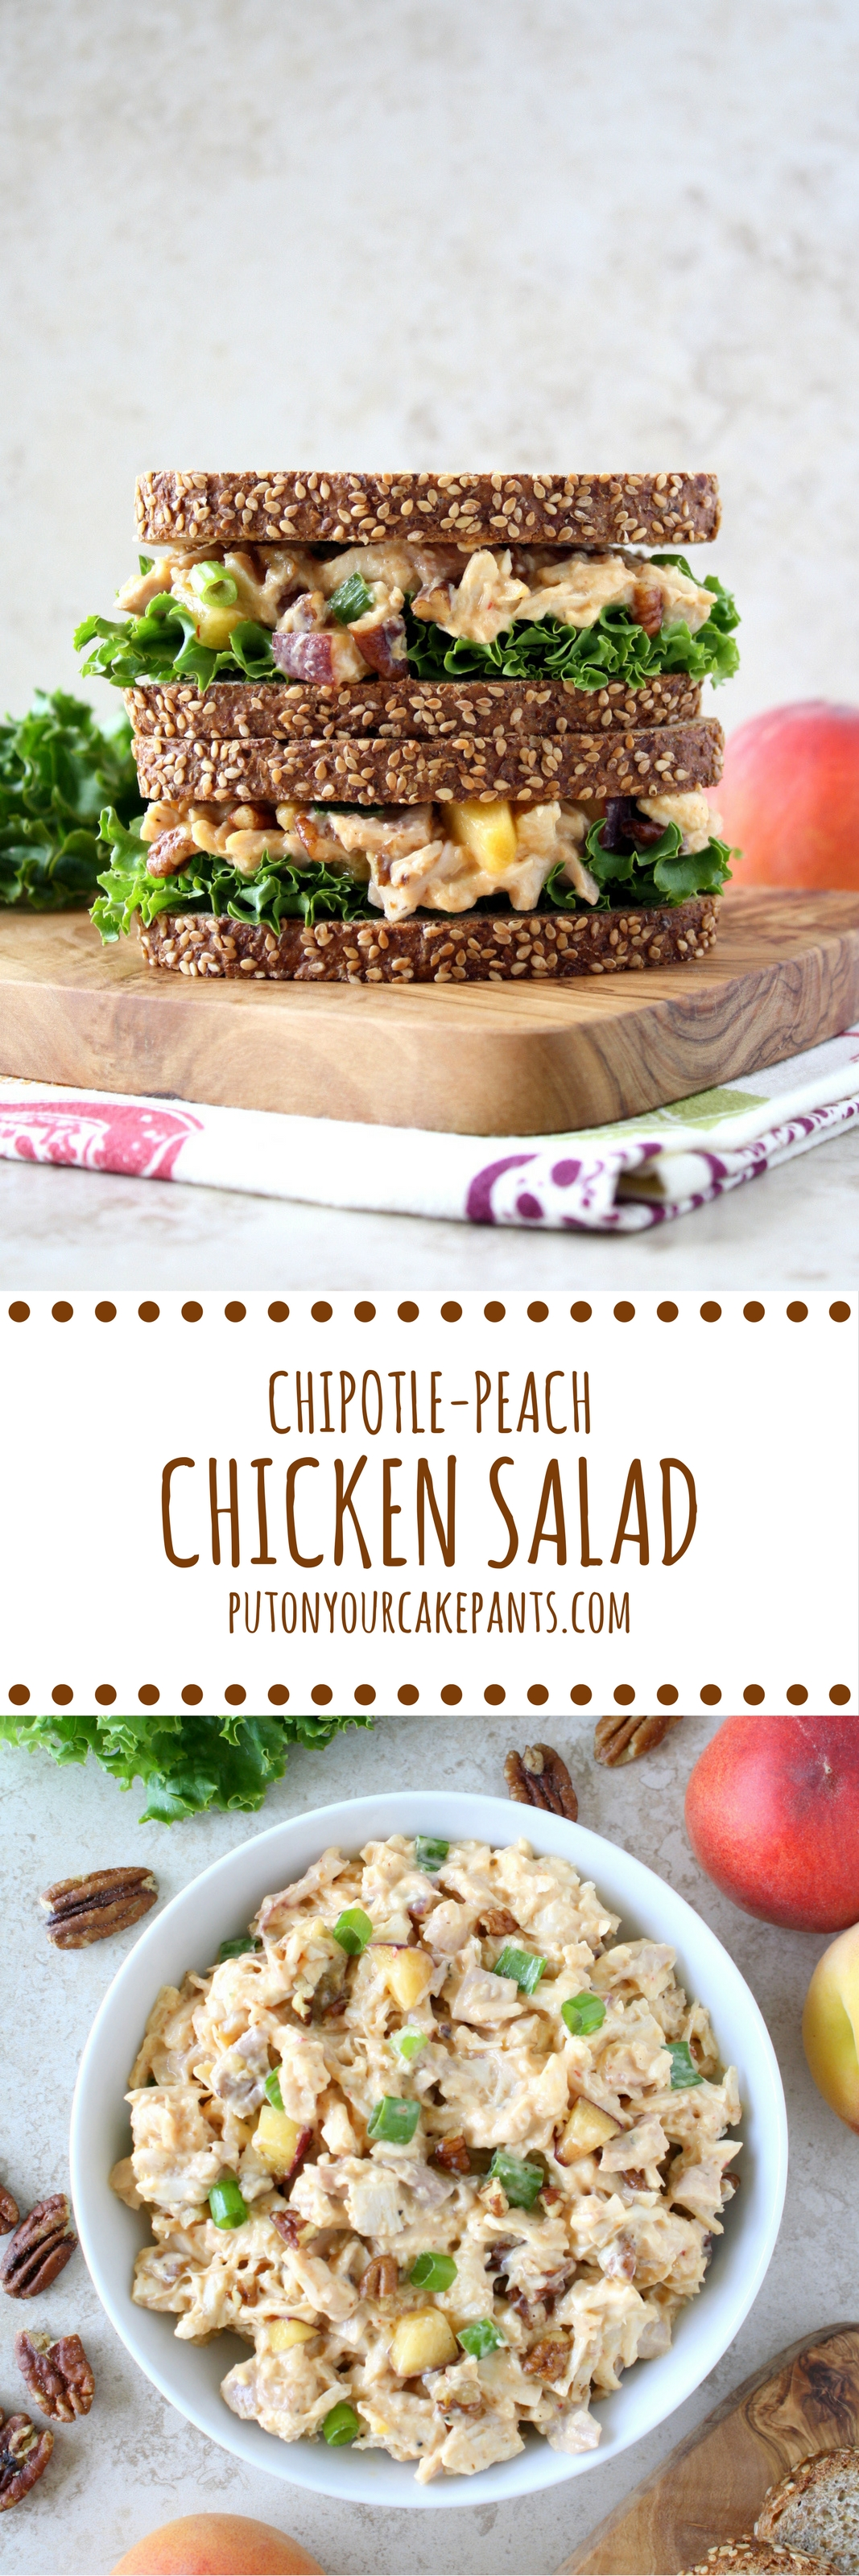 chipotle-peach chicken salad